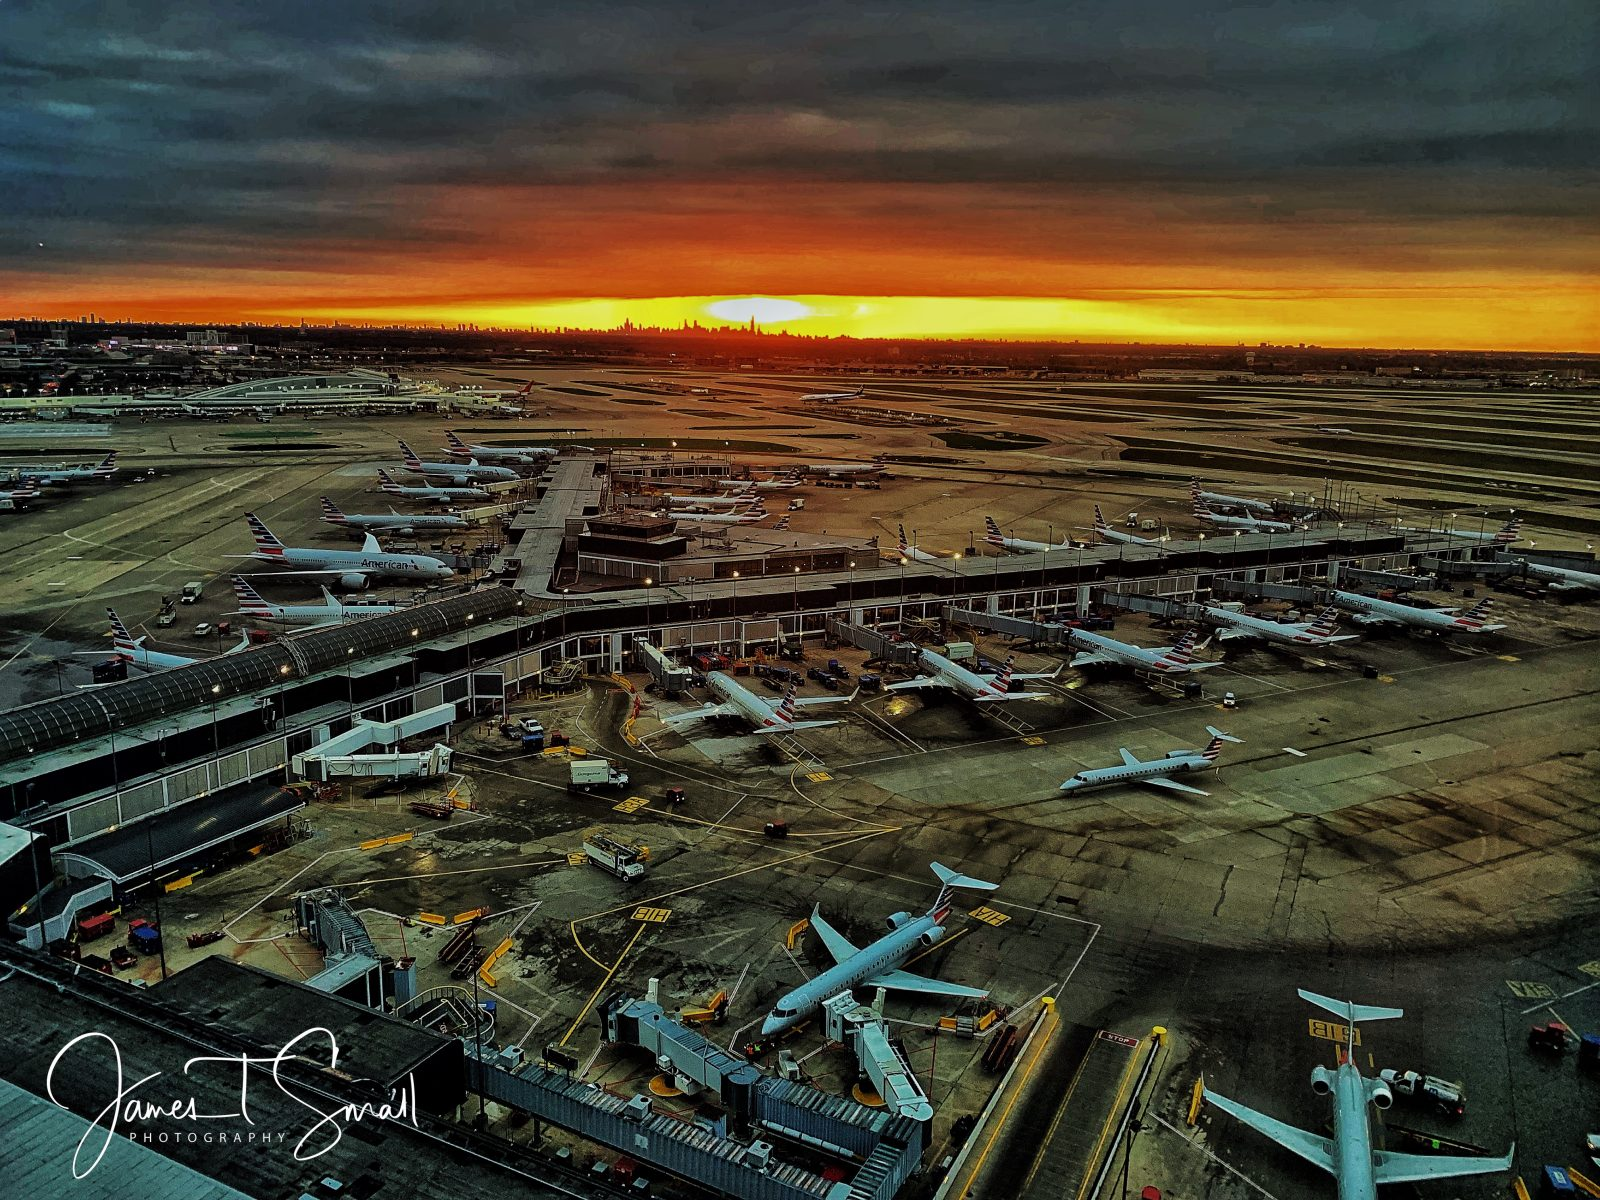 Sunrise over O'Hare